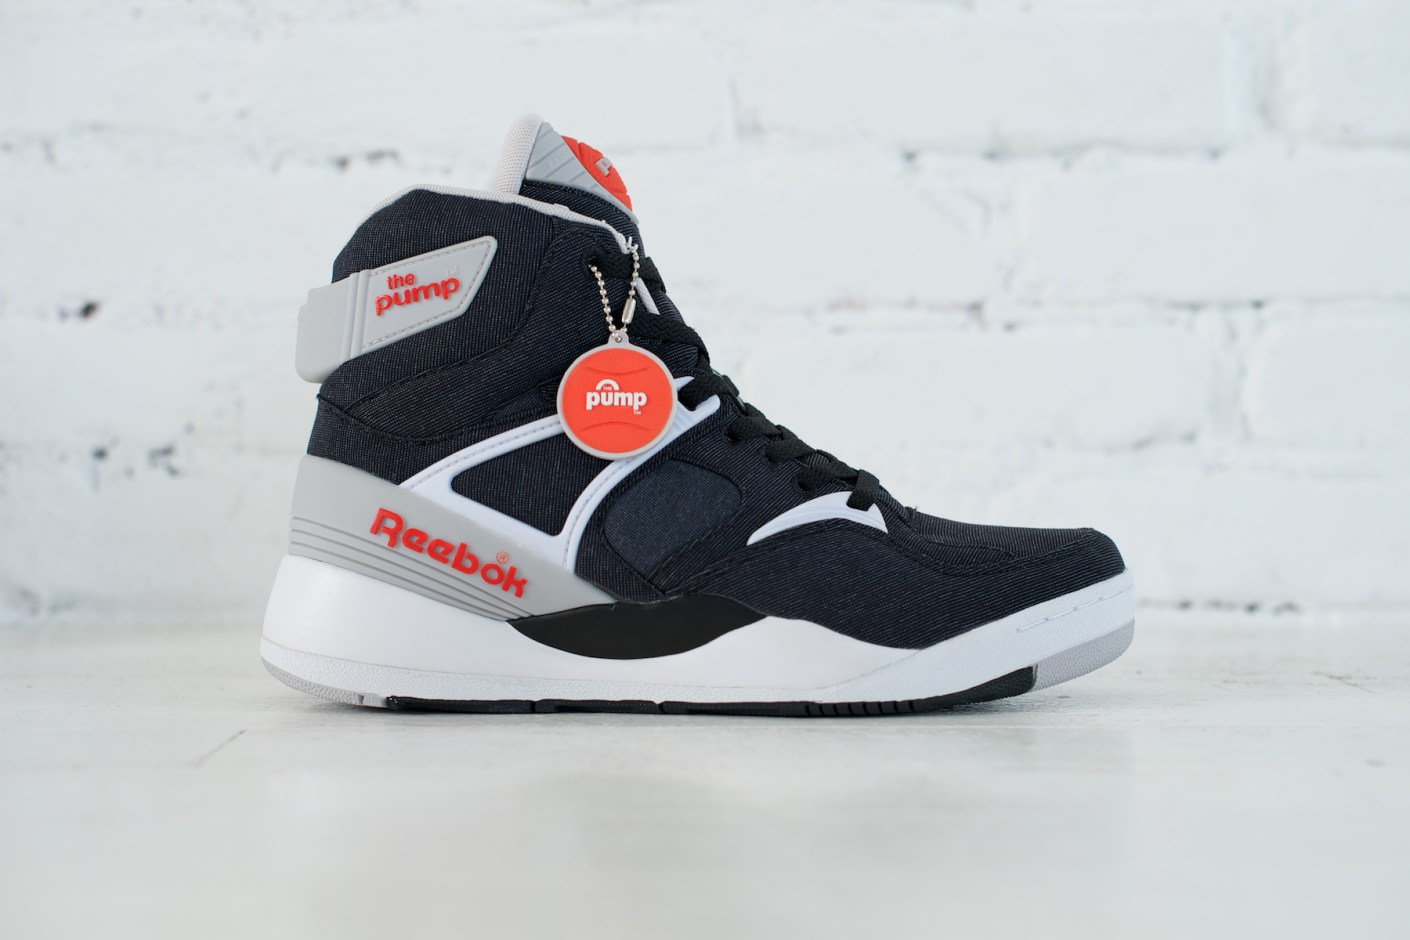 dad1b55ffdb8 atmos (Japan) x Reebok Pump 25th Anniversary